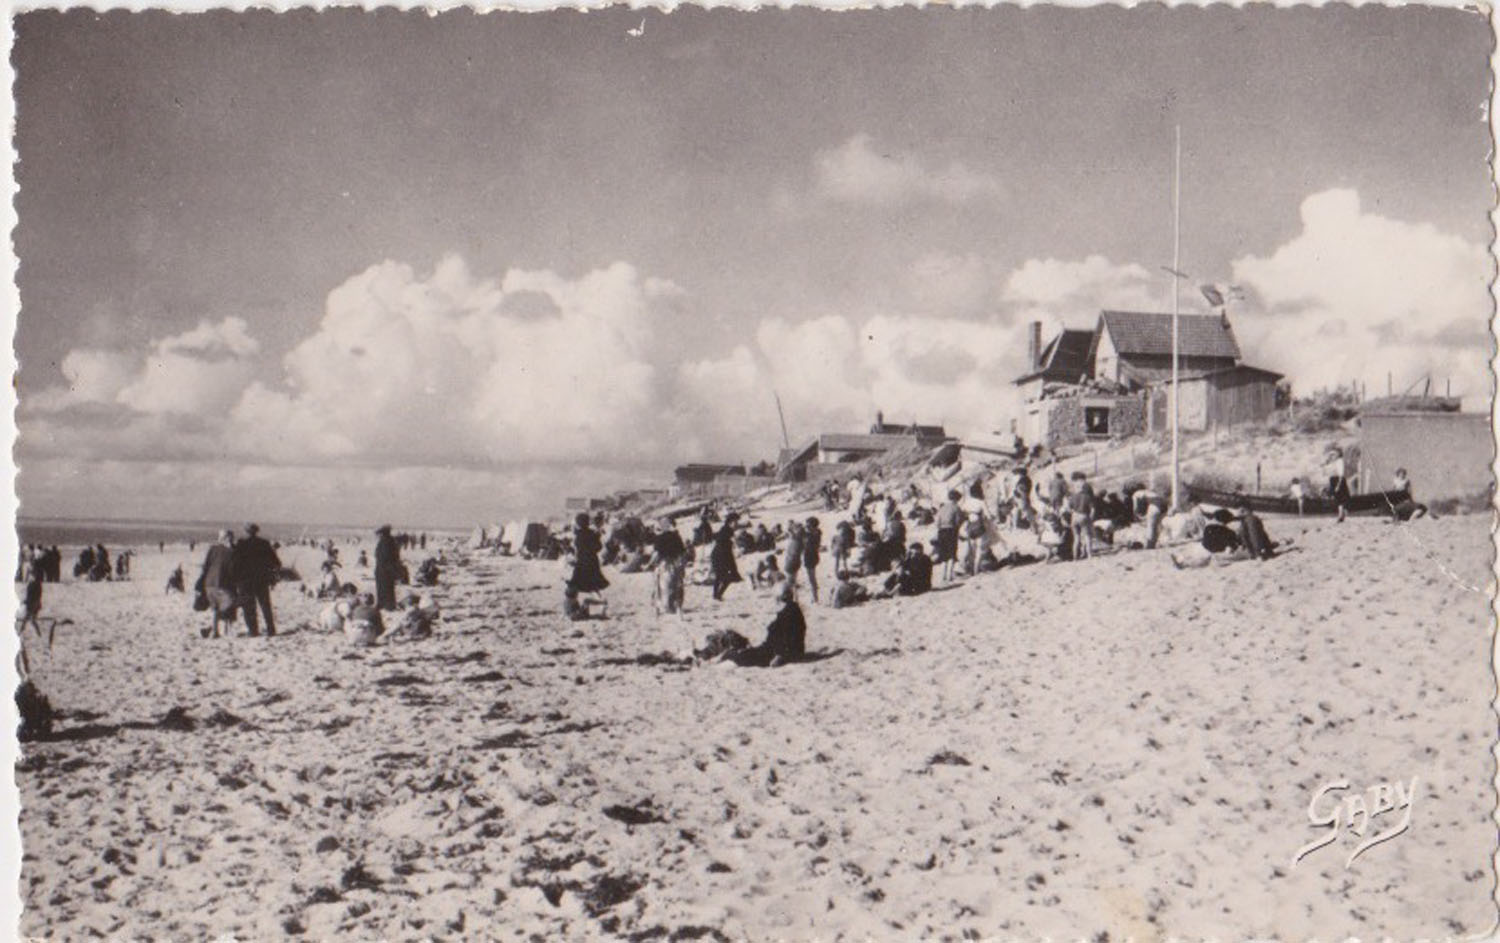 1968 St Martin Plage 2 © collection Jean Claude Ferret